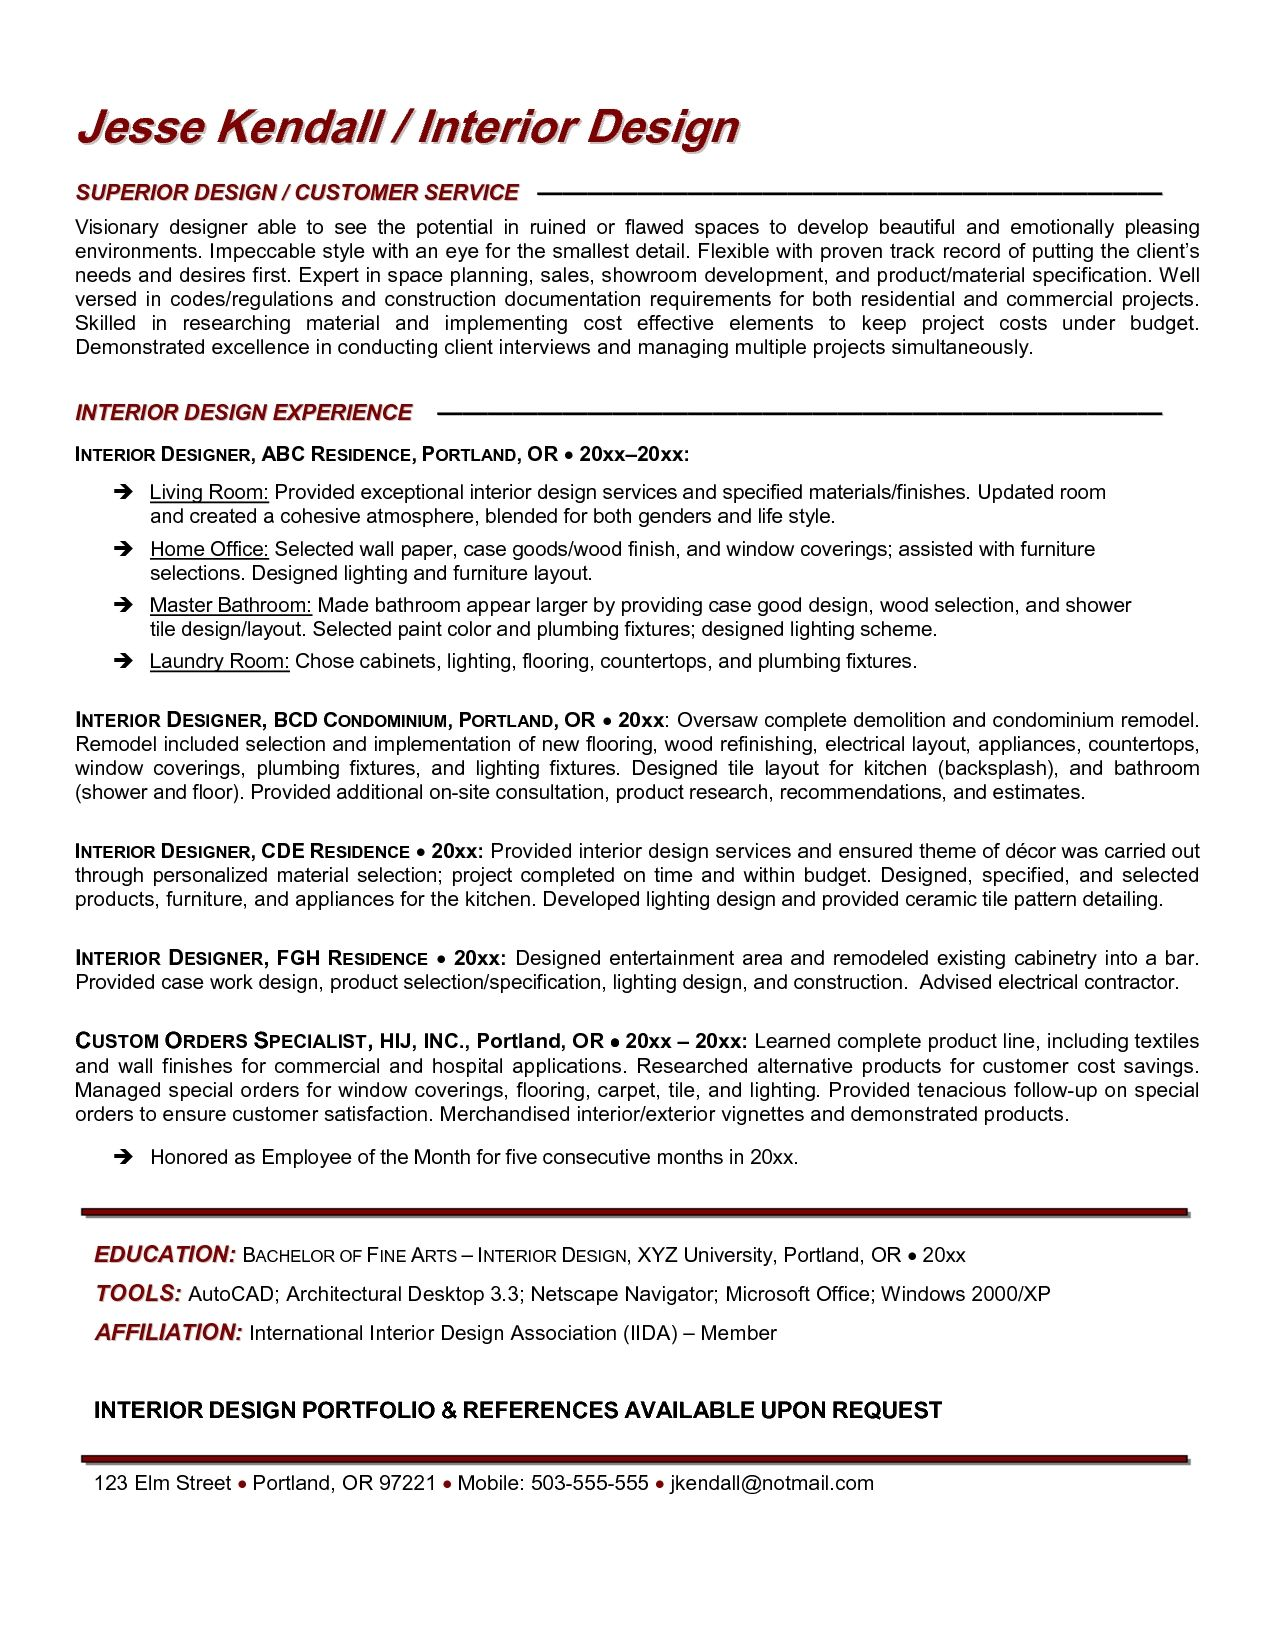 What Should A Cover Letter For A Resume Look Like Captivating Interior Design Resume Sample Designer Resumes  Portfolio .